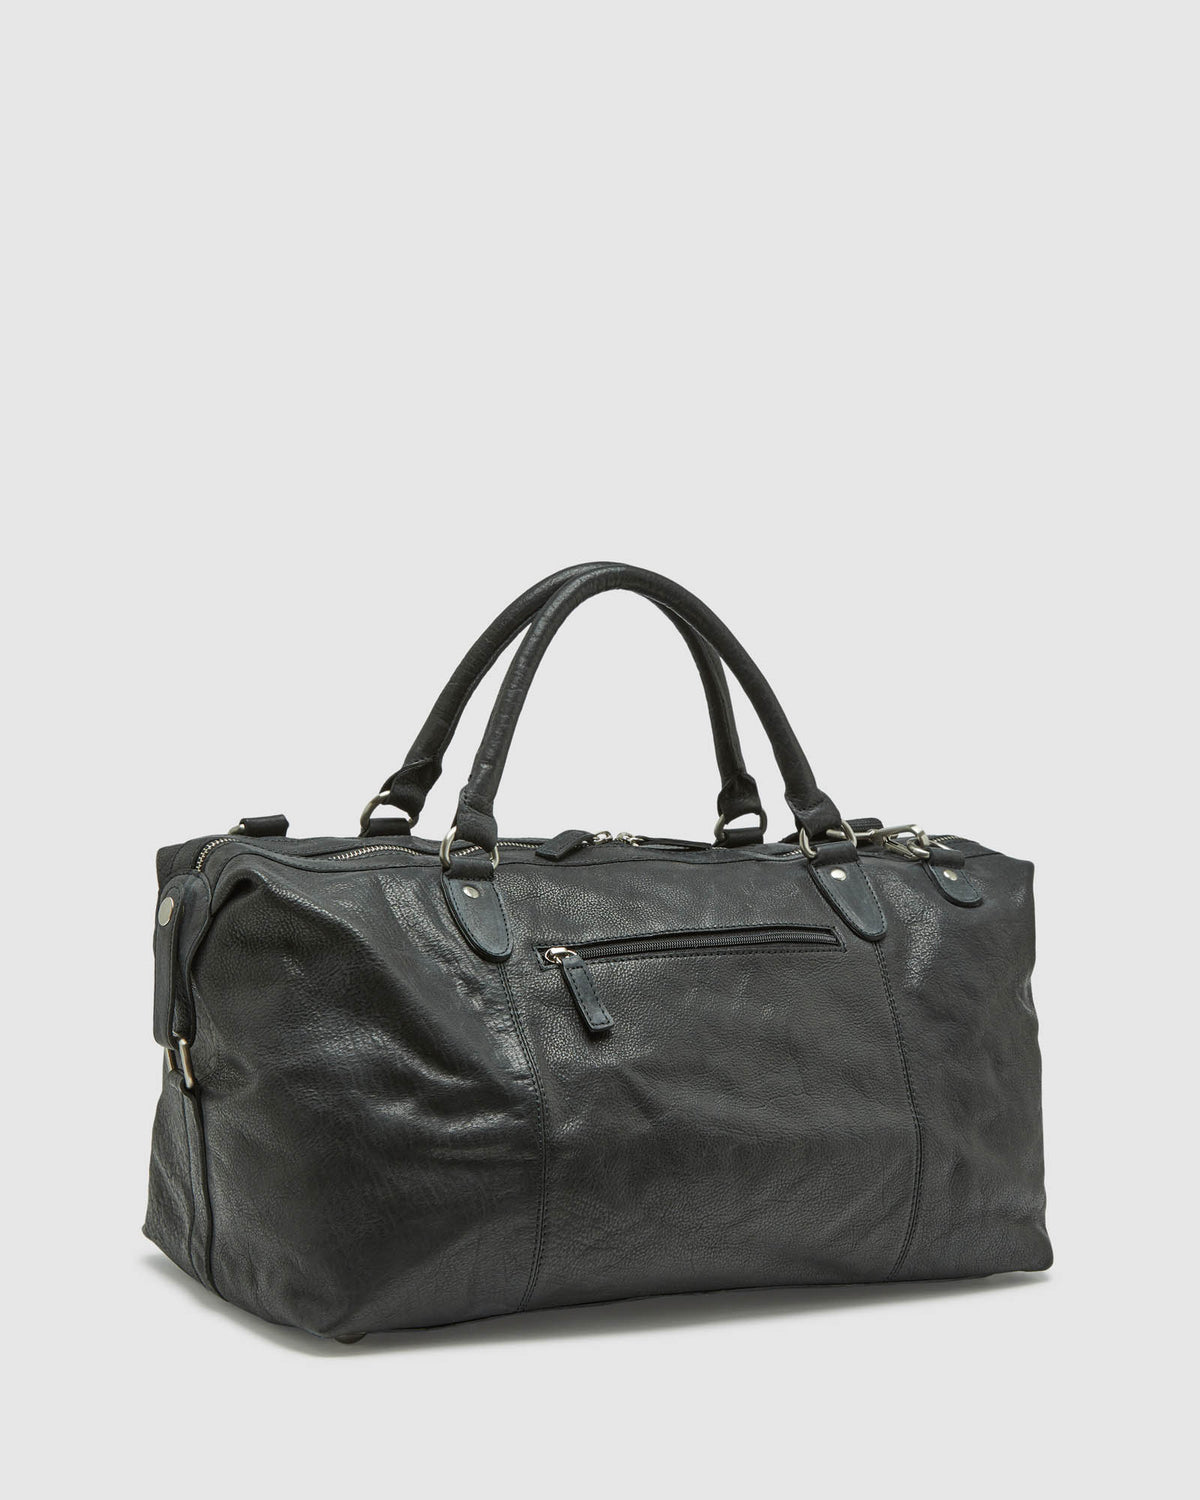 YEATS LEATHER OVERNIGHT BAG BLACK